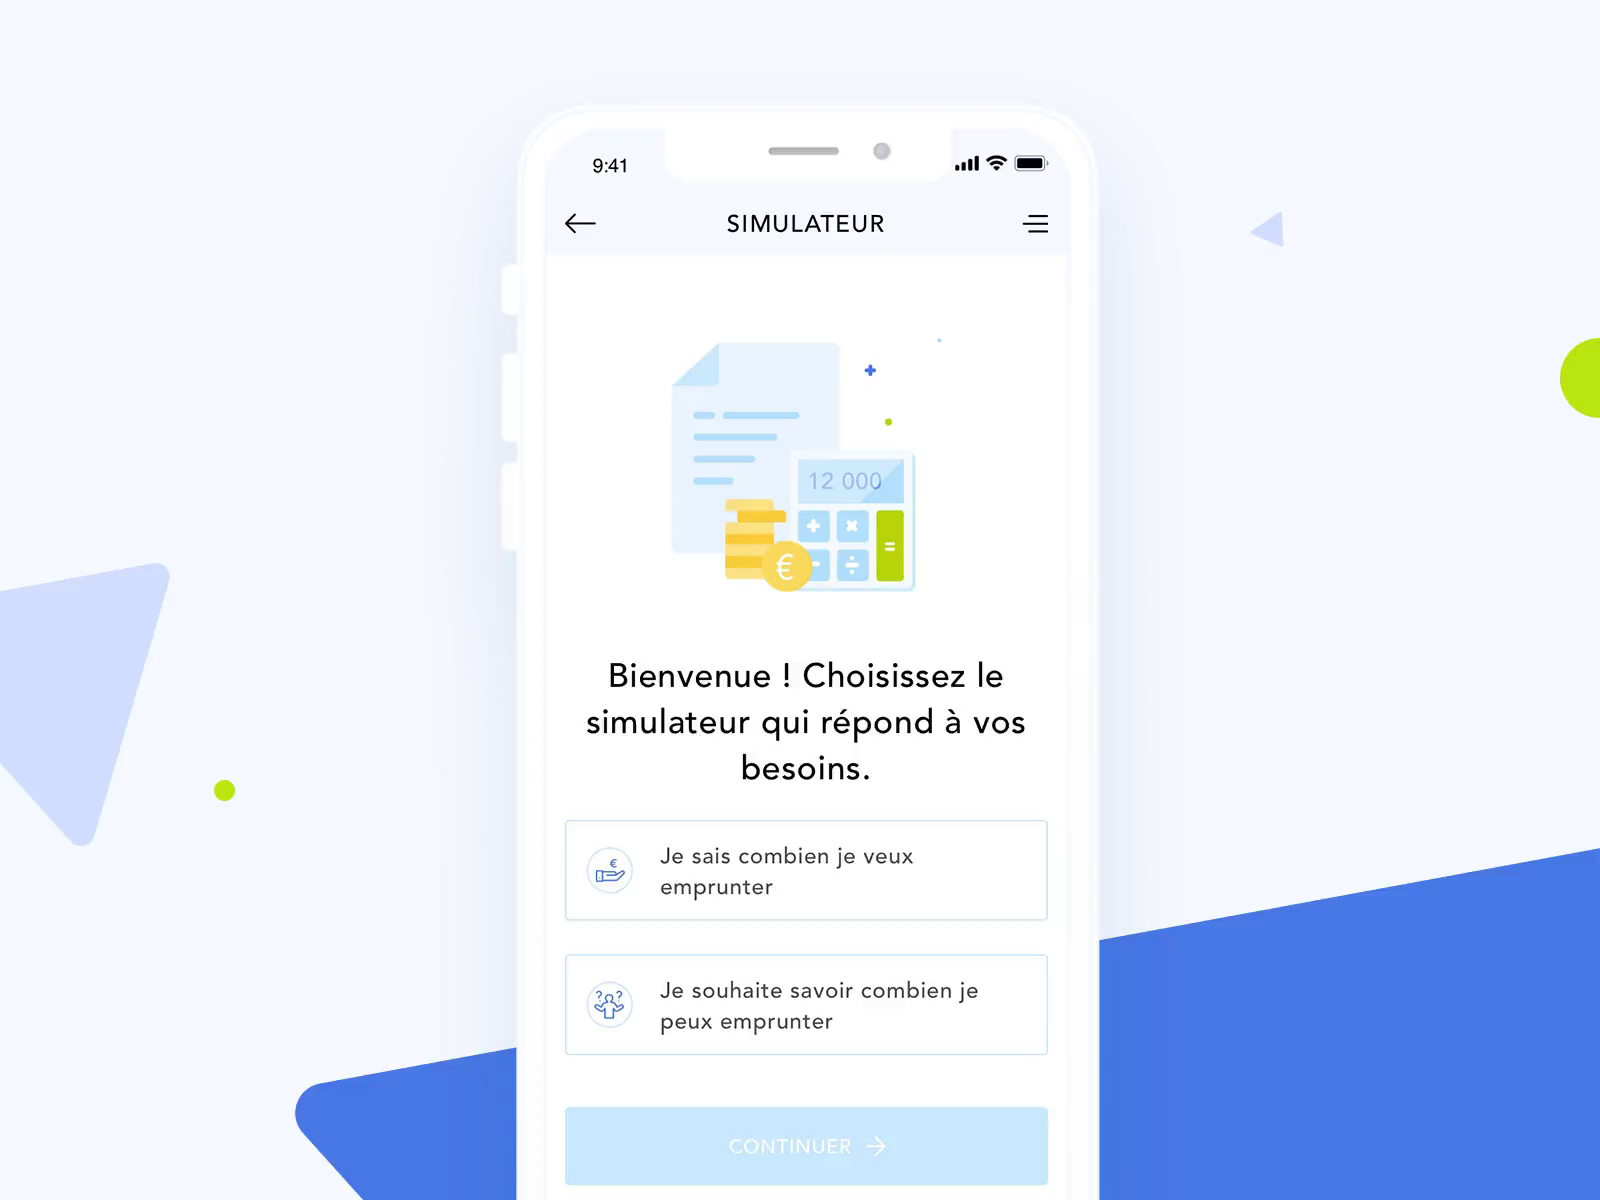 Online bank credit simulator animation design by Yifan Ding ⛵ on